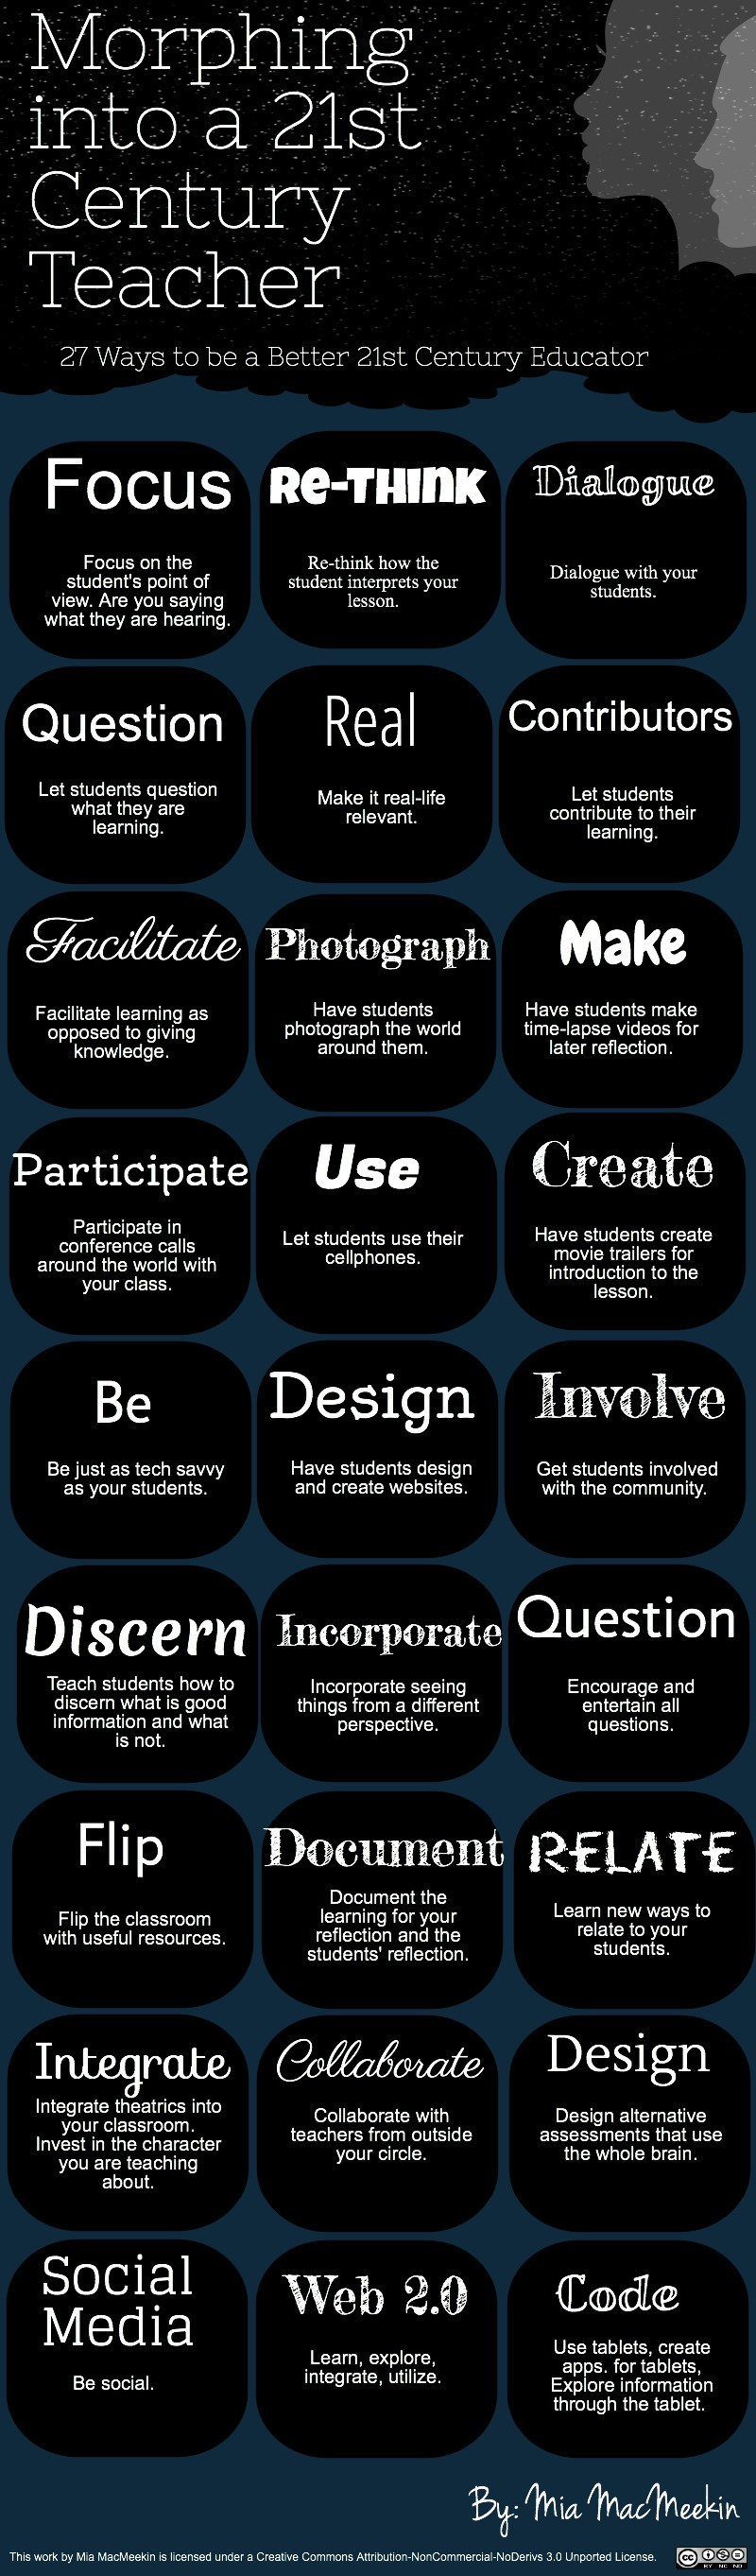 How to Become a Better 21st Century Teacher Infographic